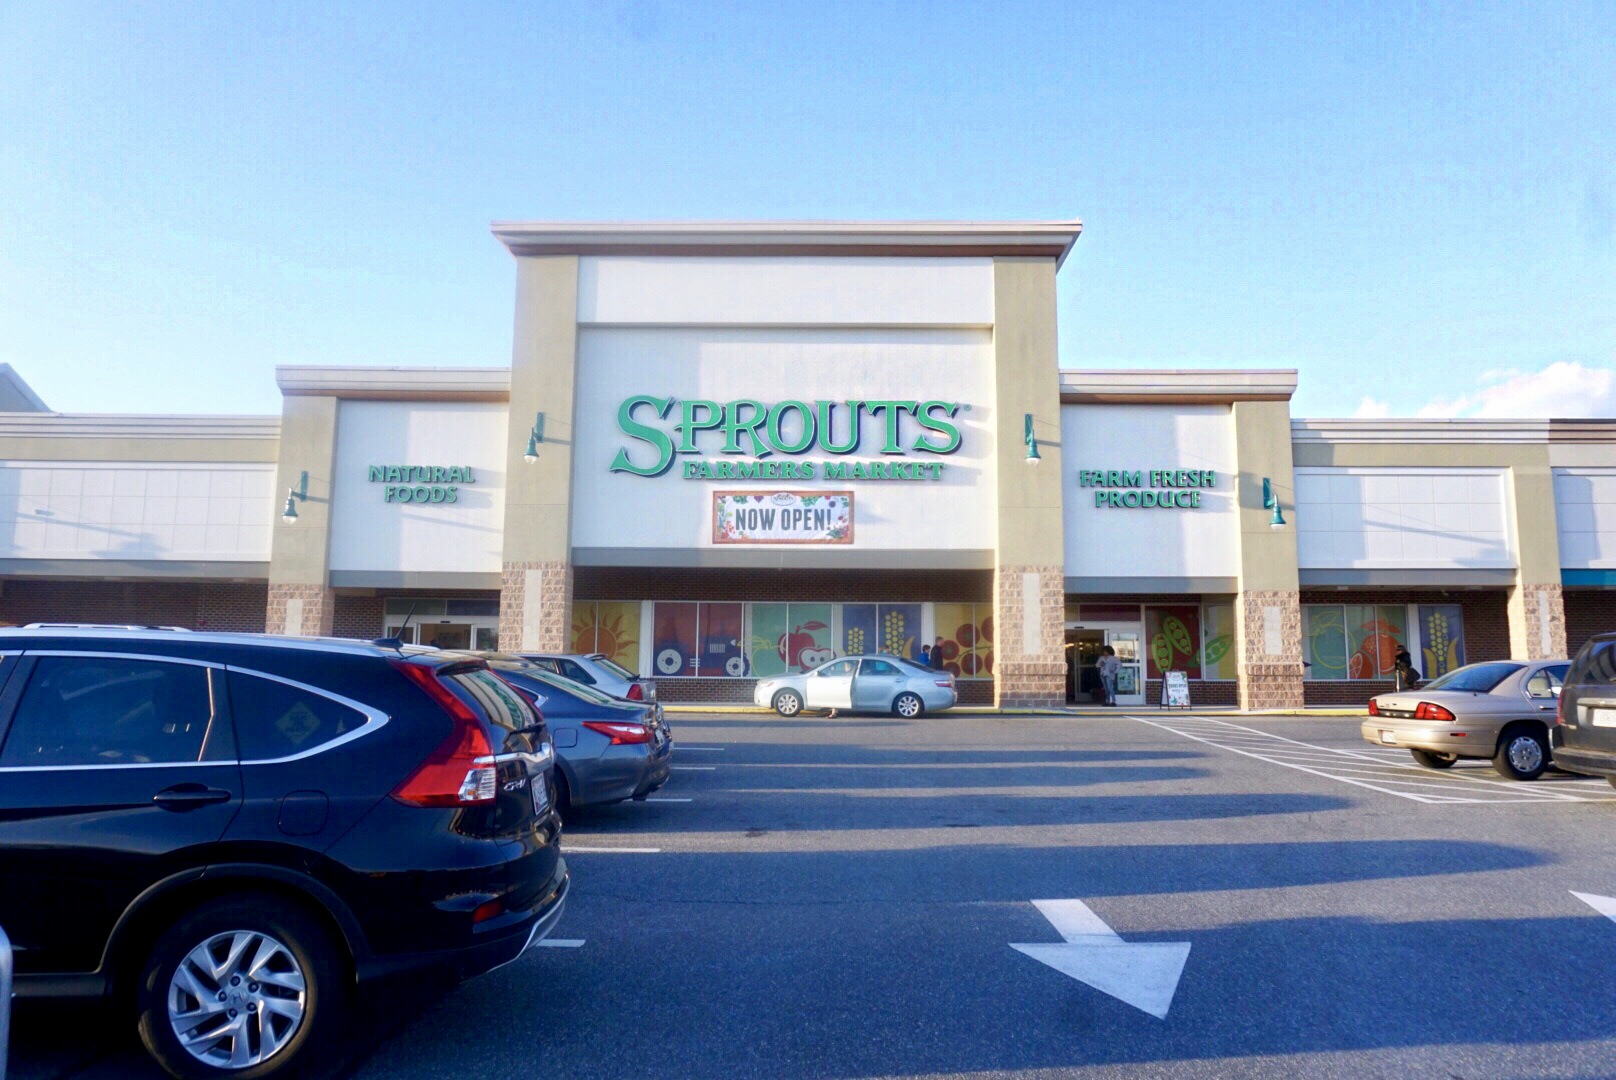 *this post is sponsored by SPROUTS. All of the opinions and views are my own.